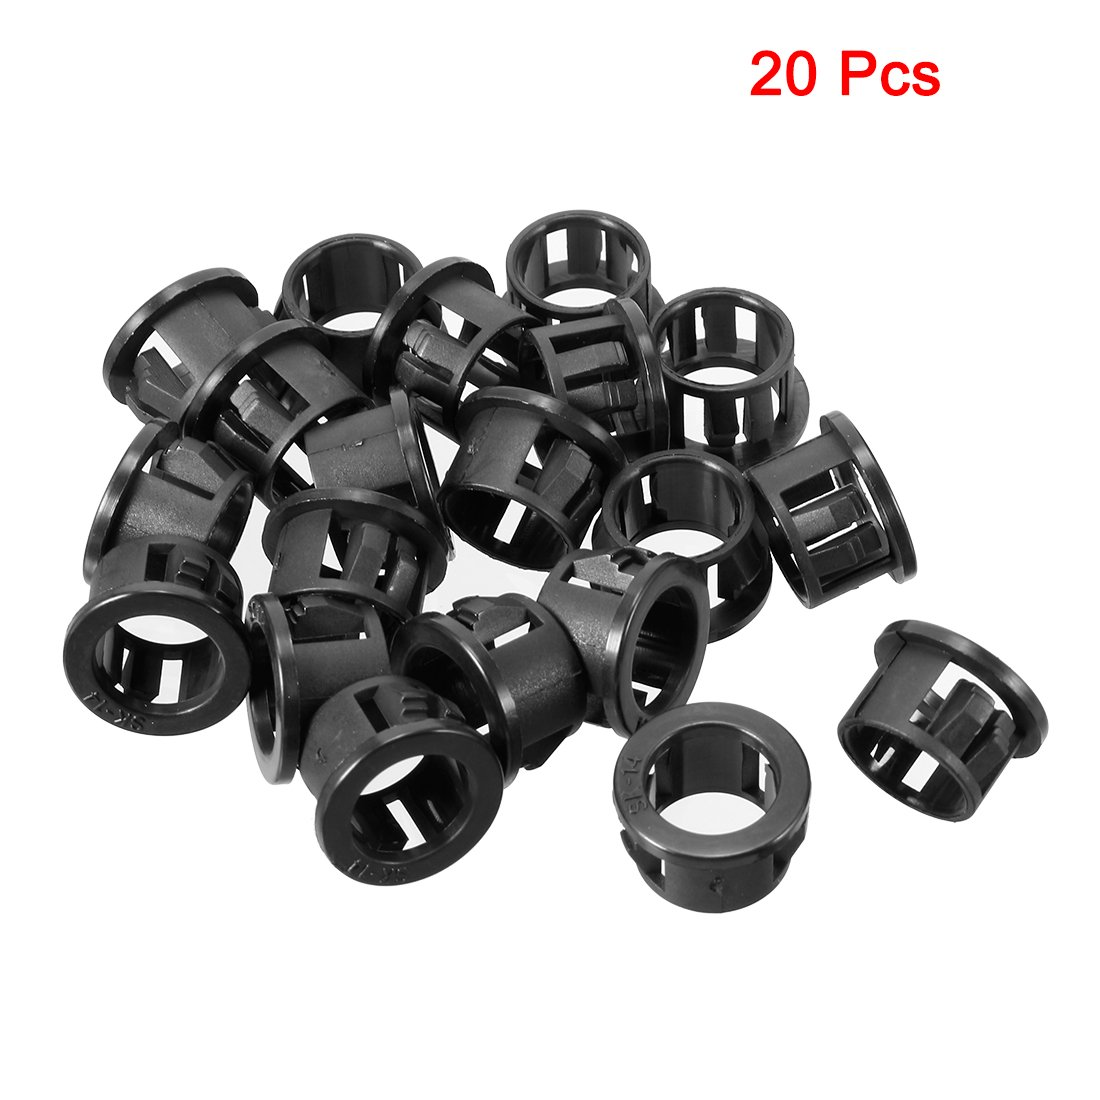 uxcell/® 20pcs 10mm Mounted Cable Hose Snap Bushing Grommet Protector Black